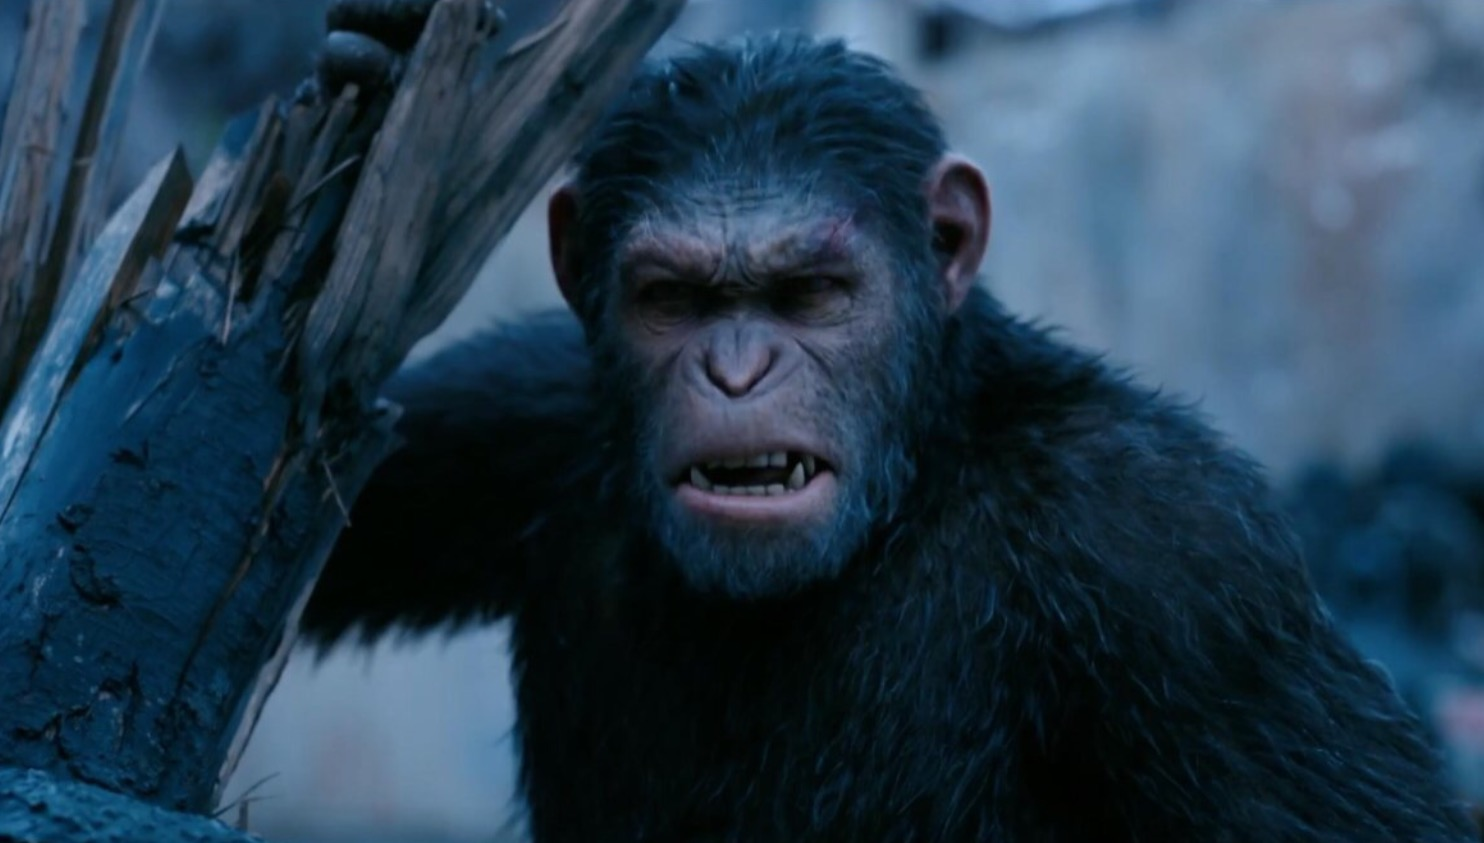 Caesar (Andy Serkis) in War for the Planet of the Apes